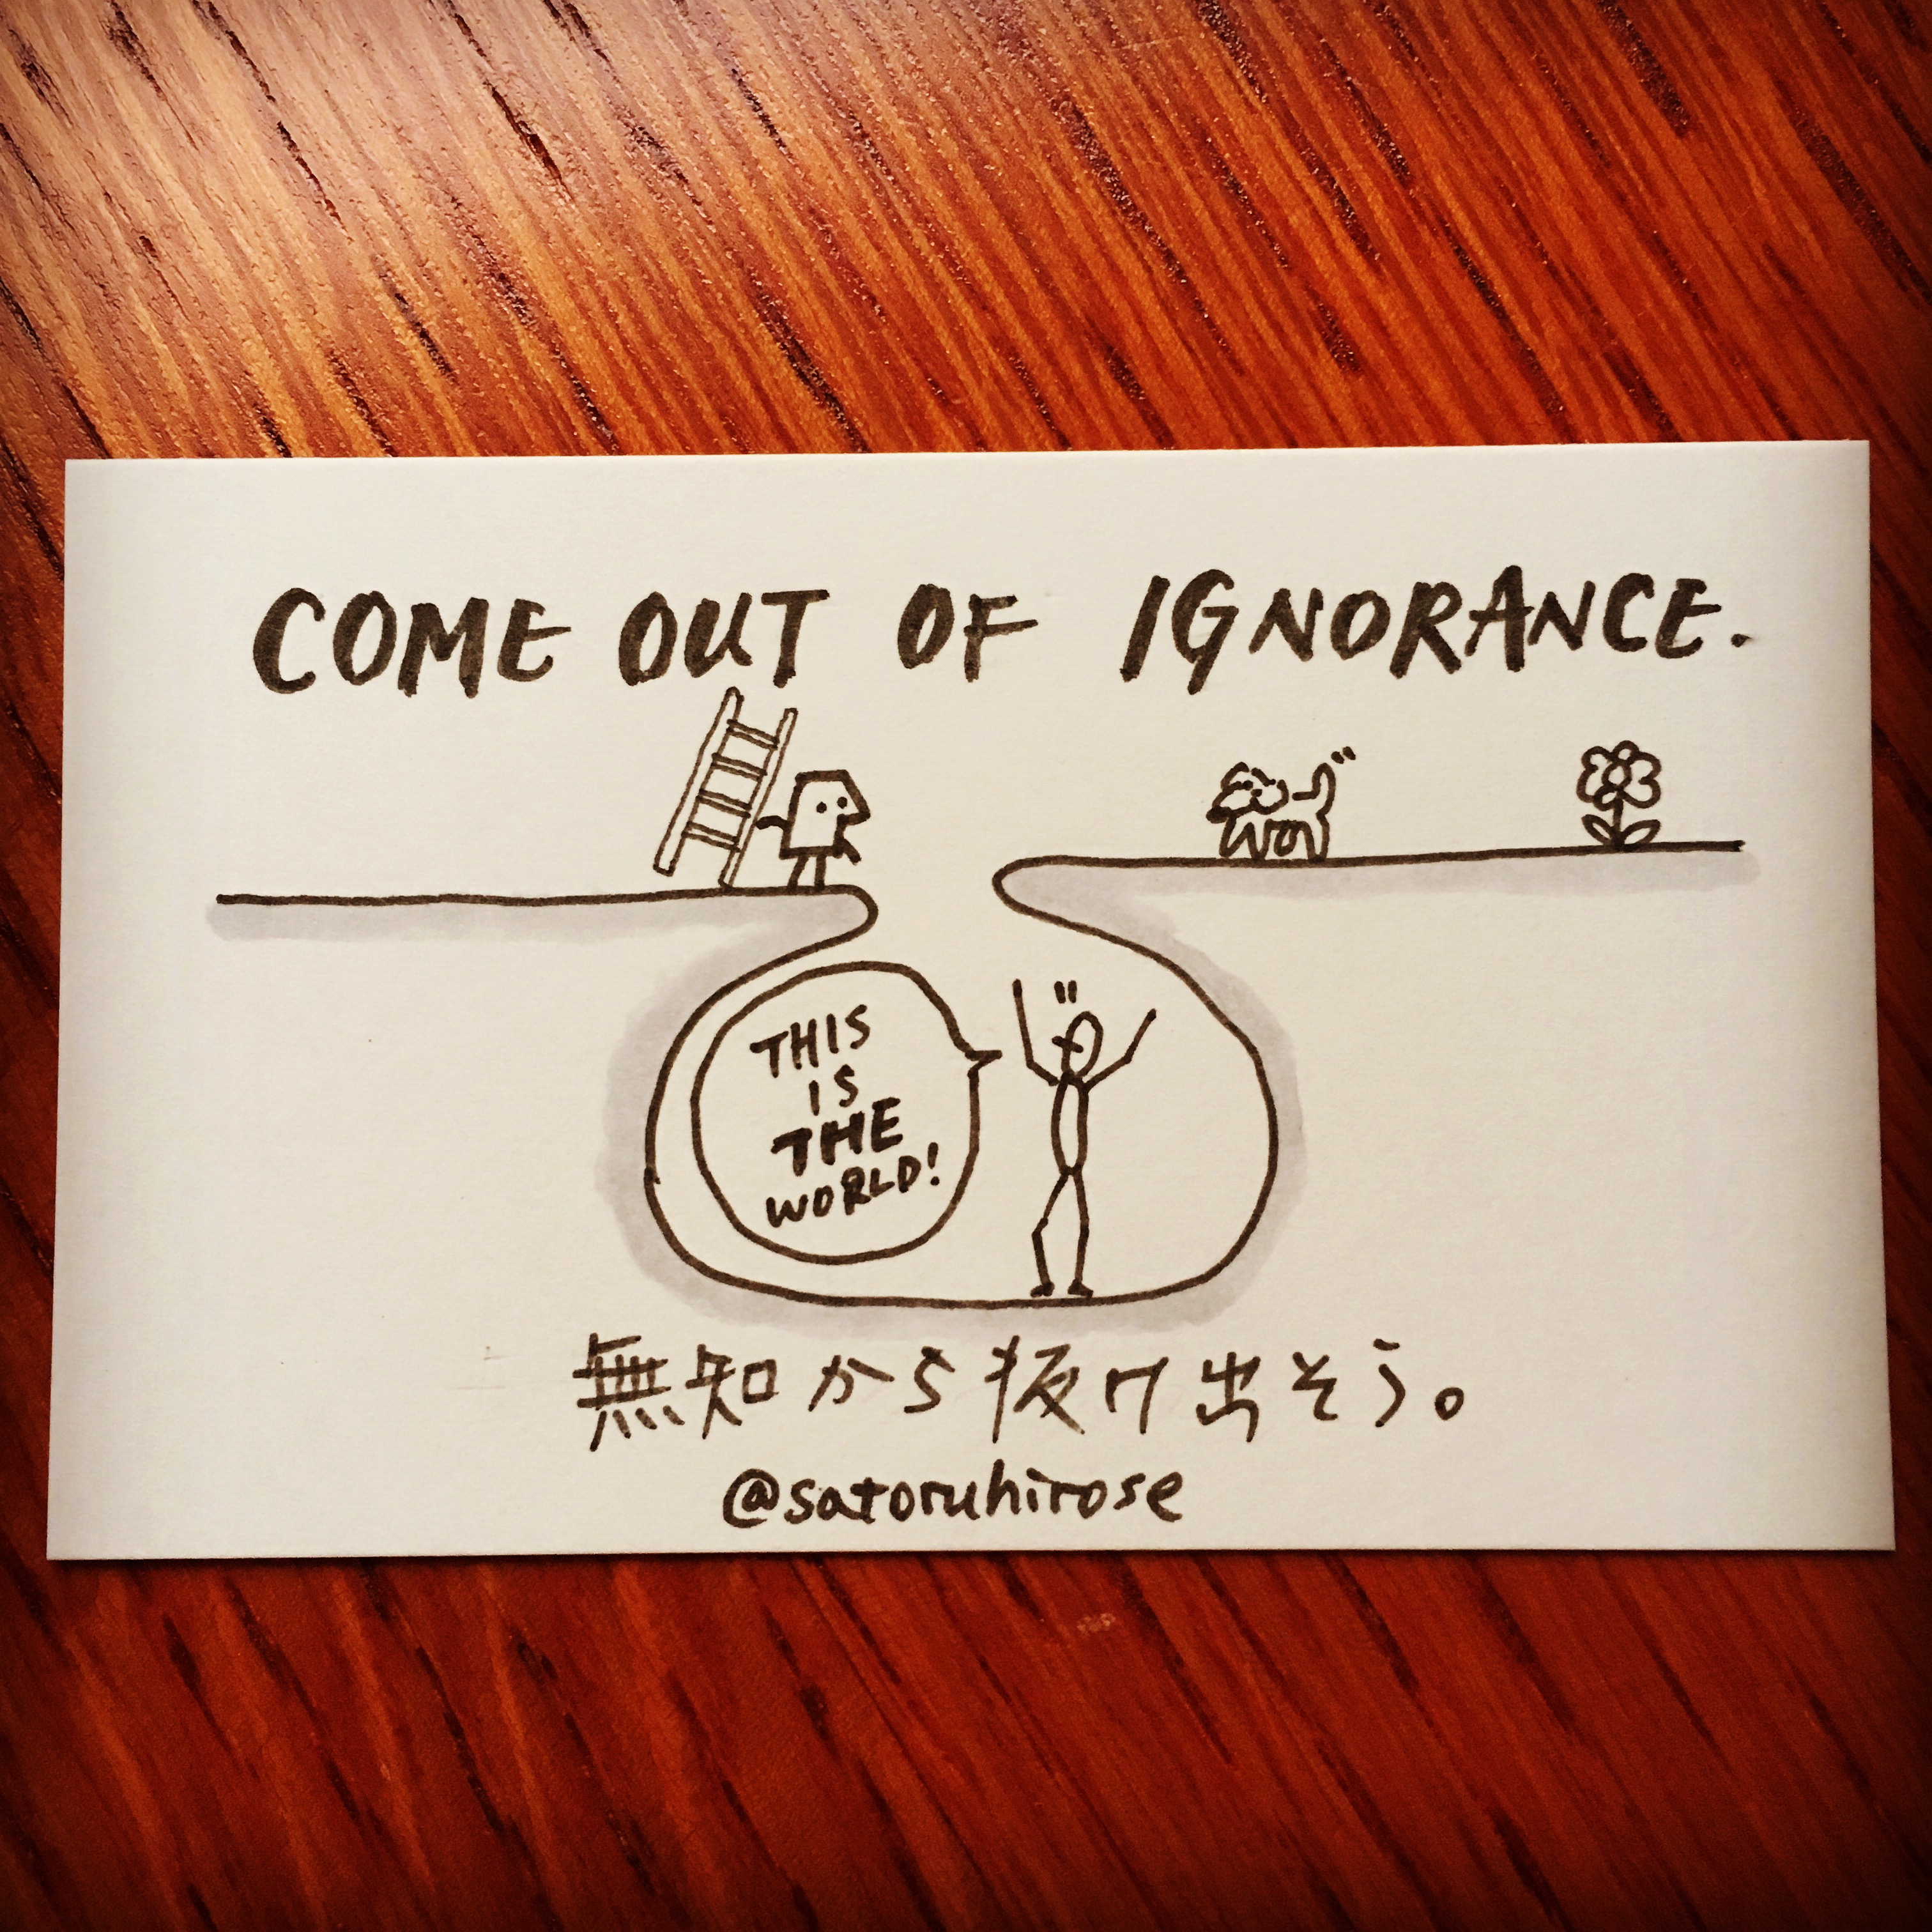 Come out of ignorance.